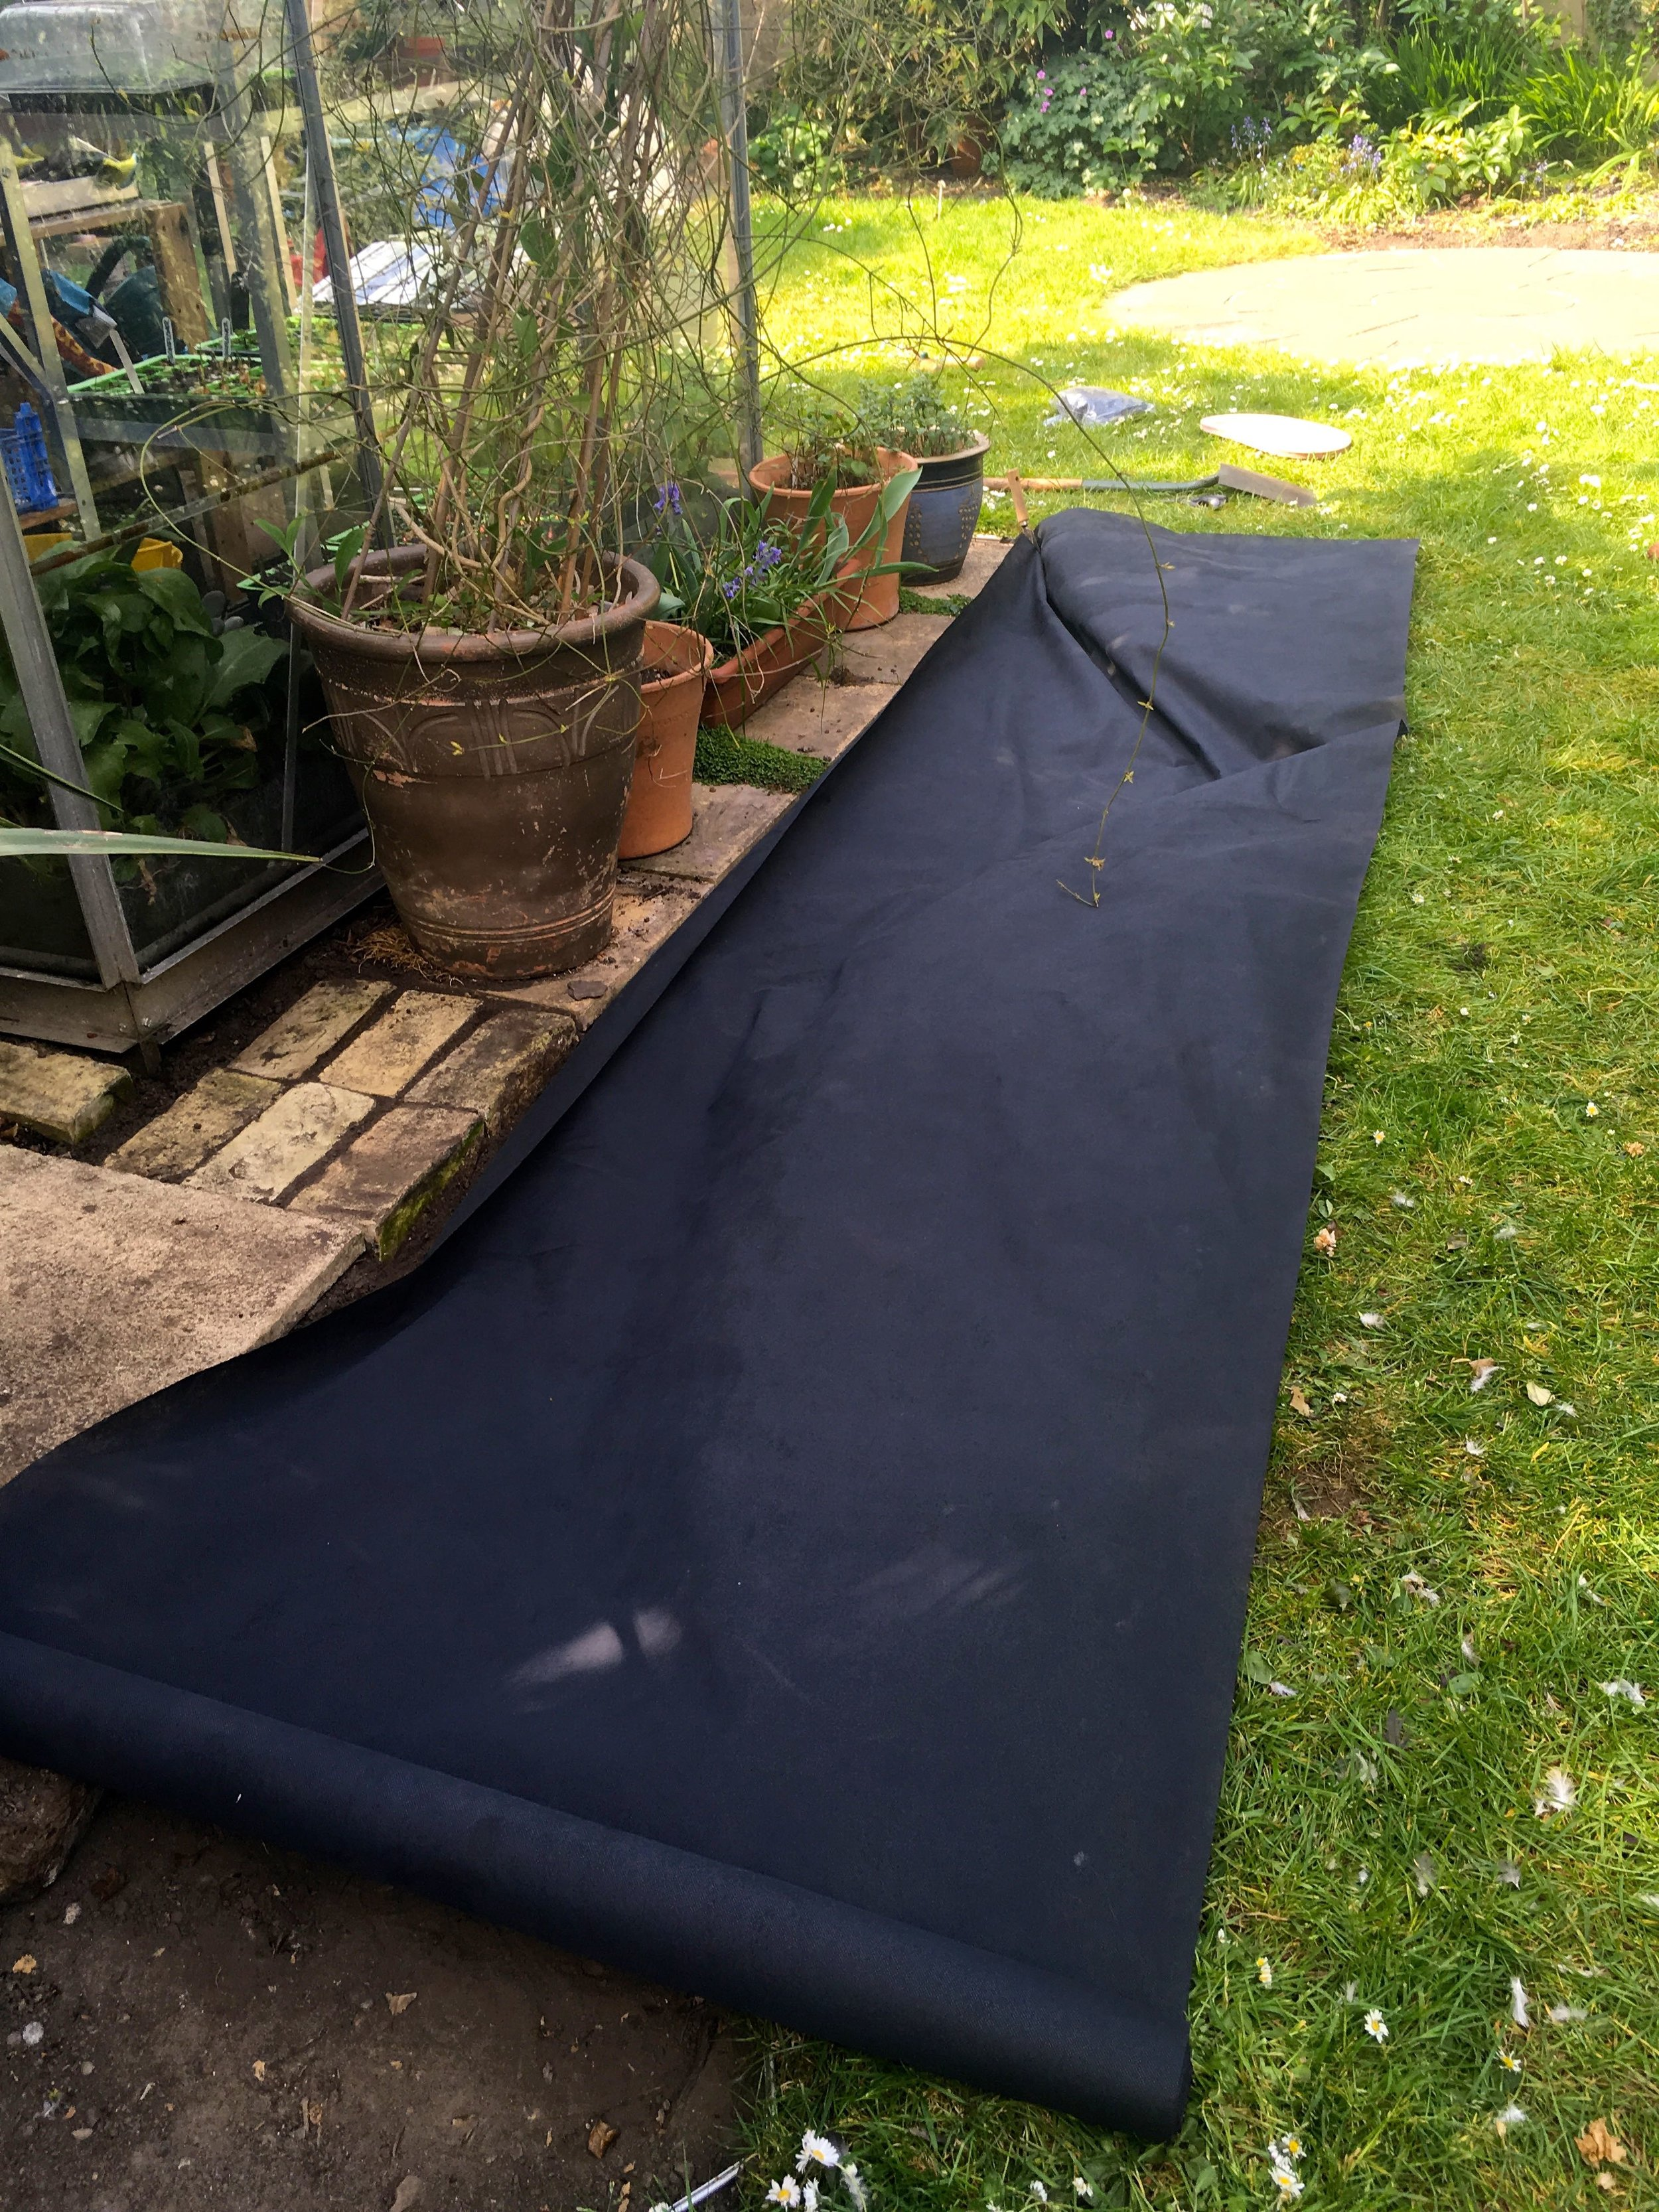 And then it was time for the membrane, which was much easier to lay than I anticipated